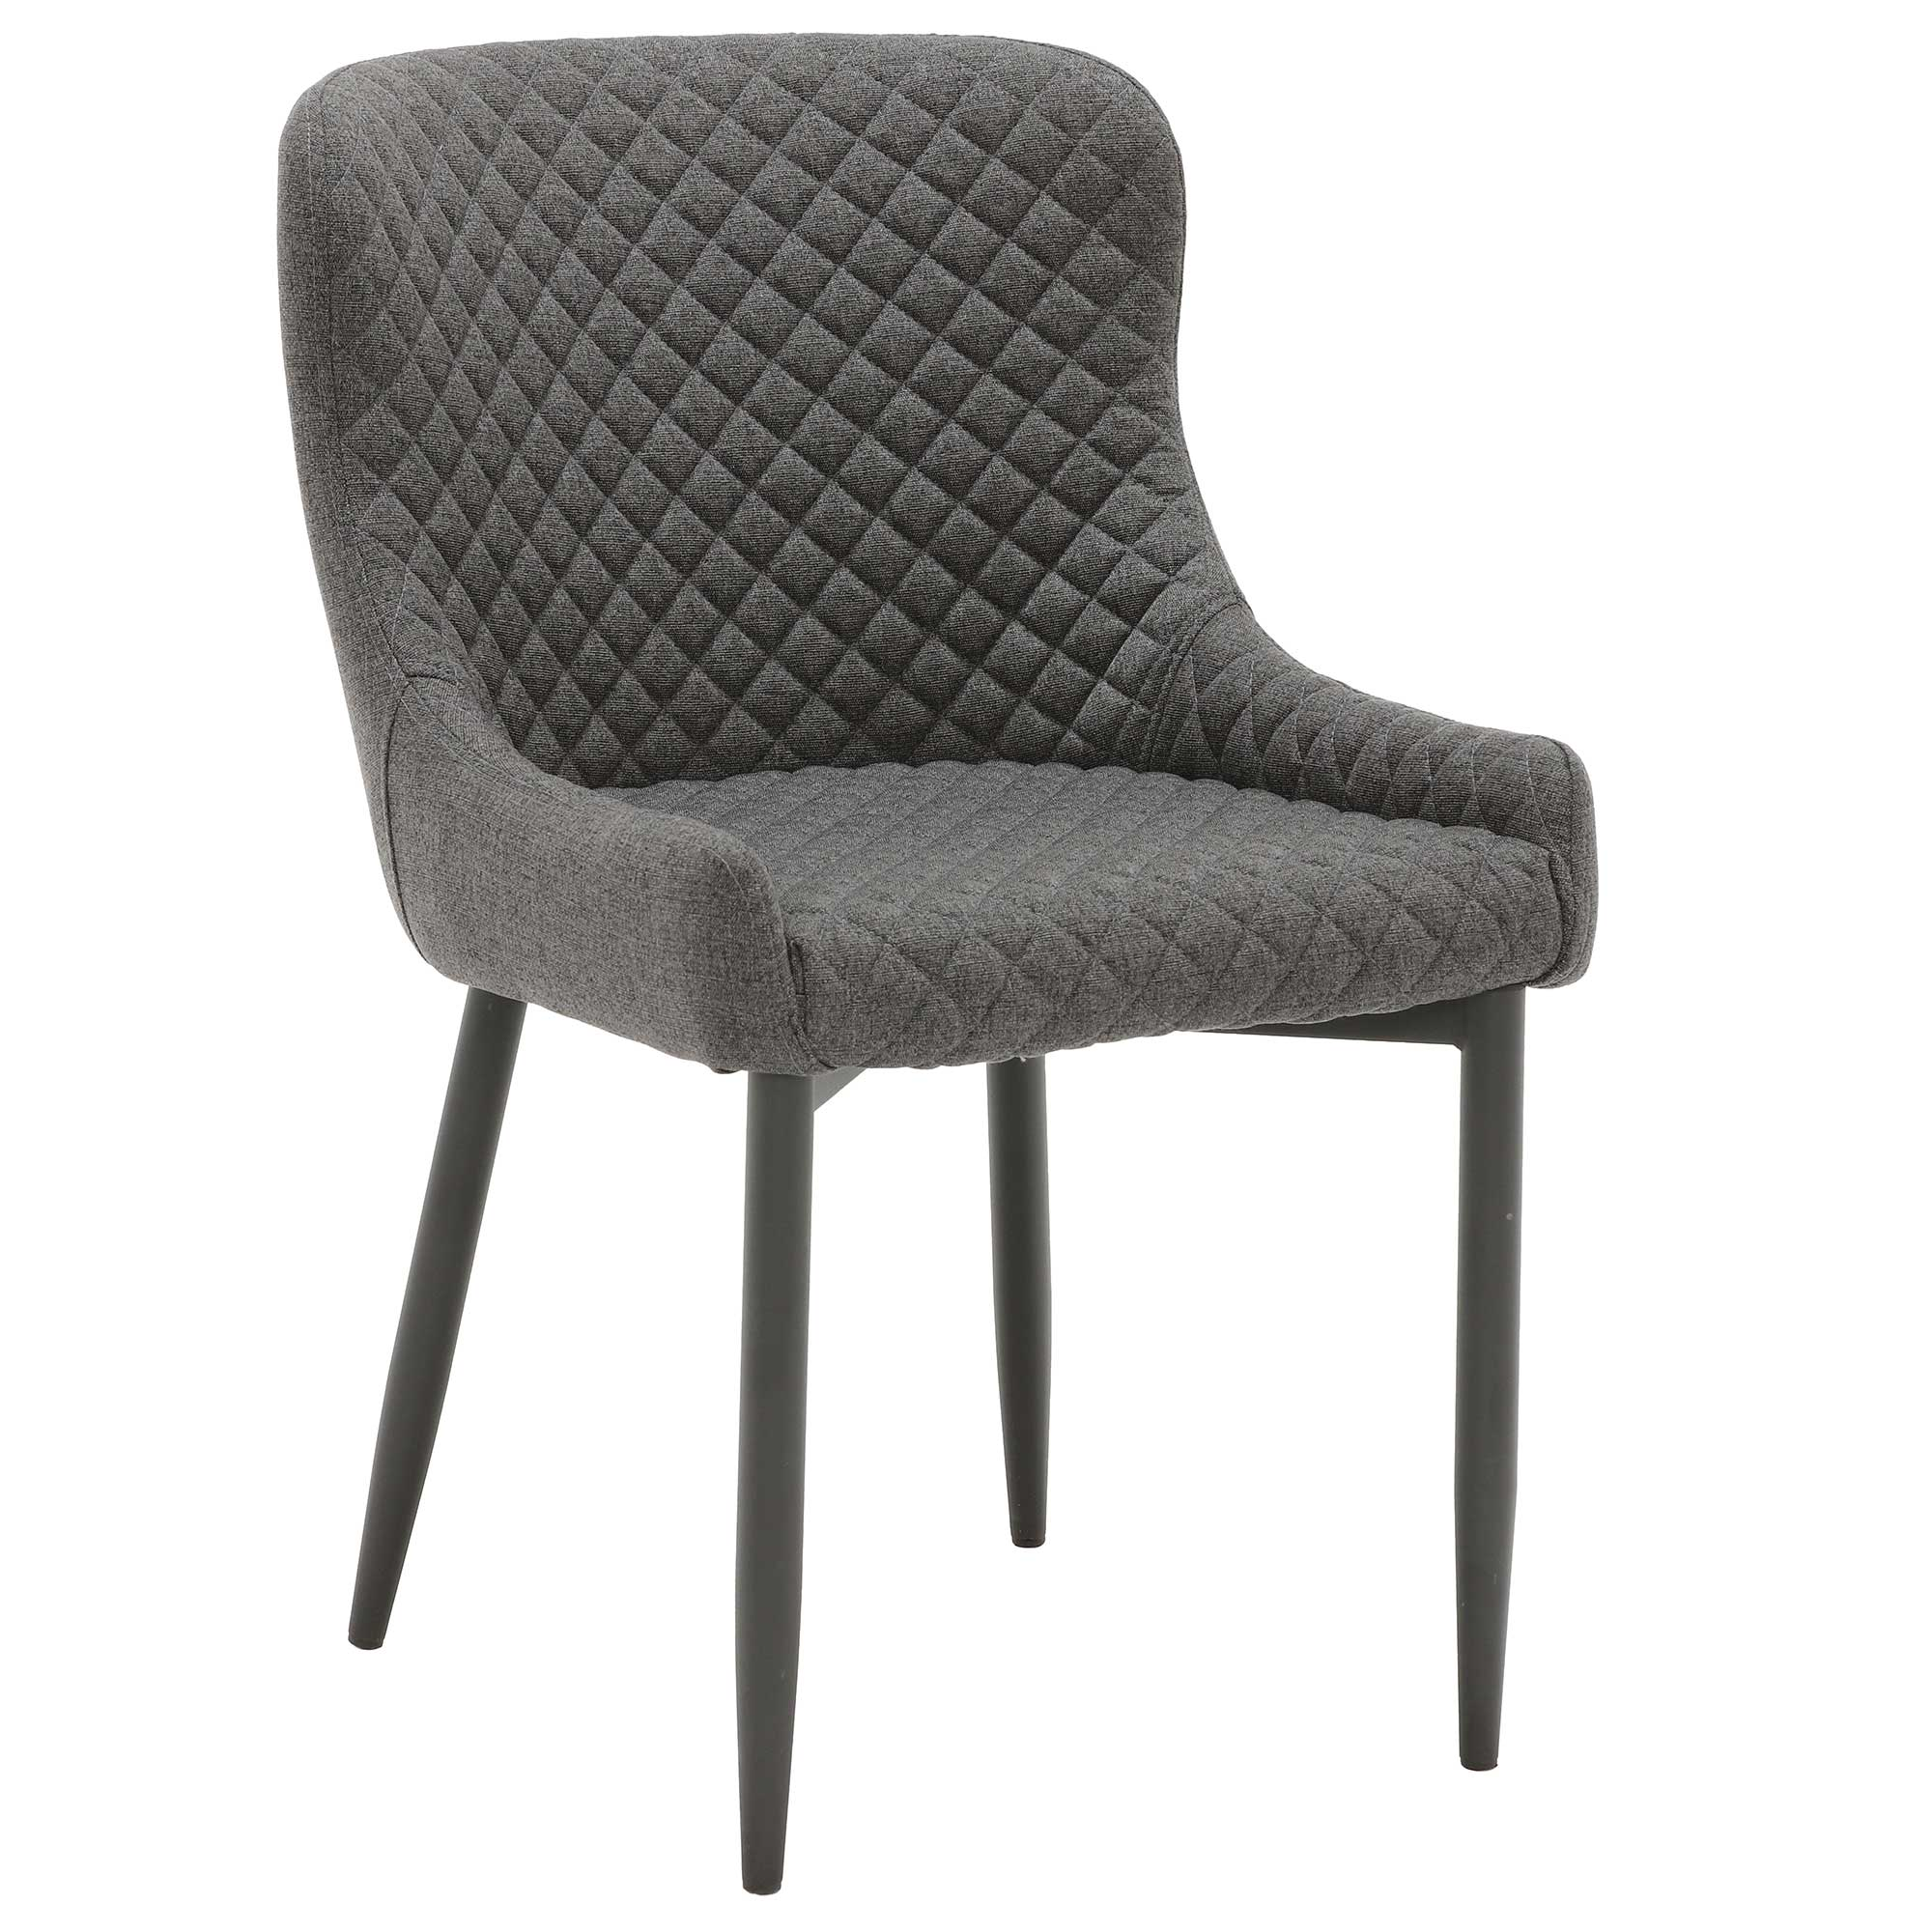 Dark Gray FABRIC DINING ARMCHAIR Comfy